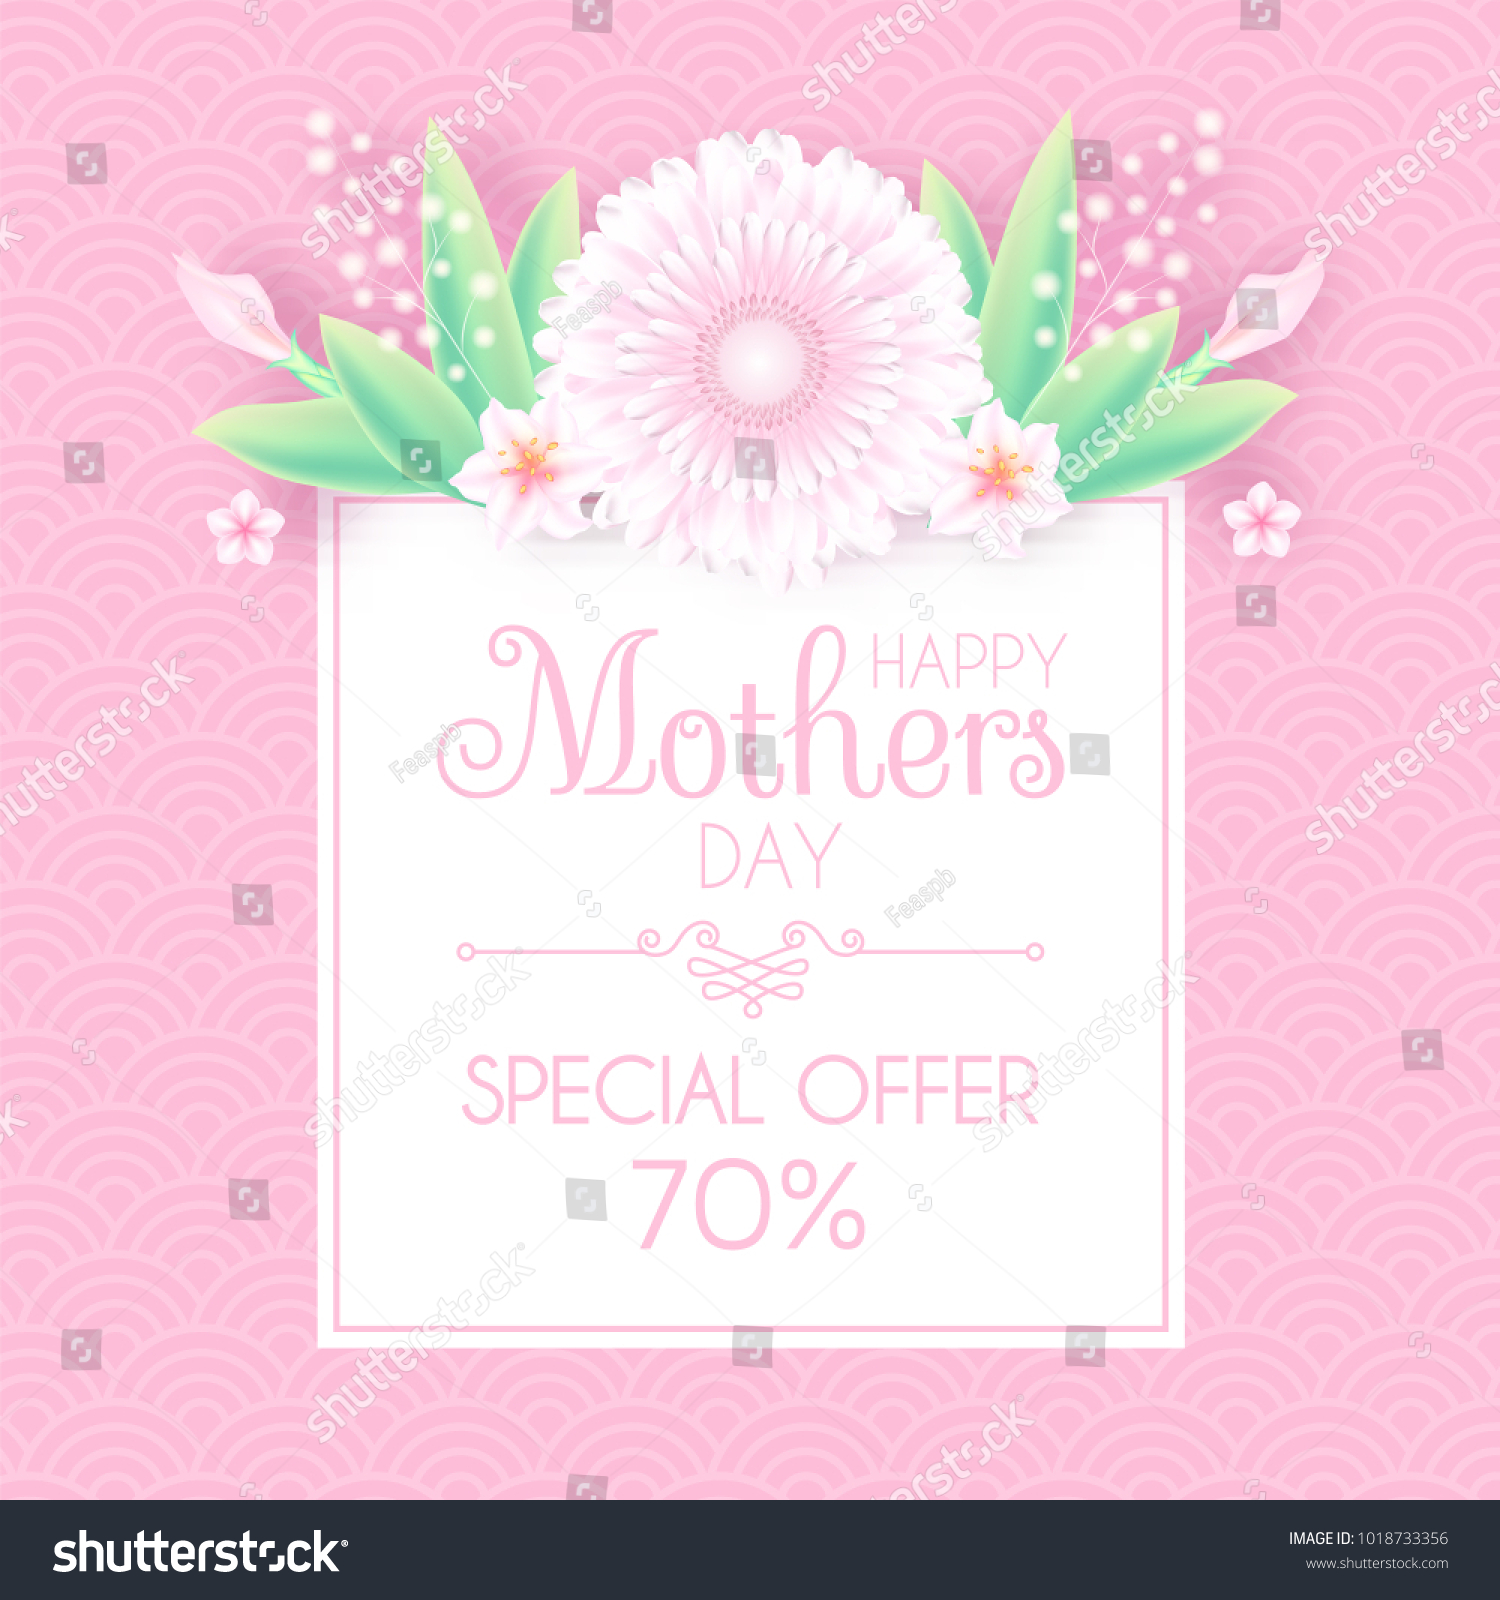 Mothers Day Greeting And Invitation With Soft Flowers Cute Card